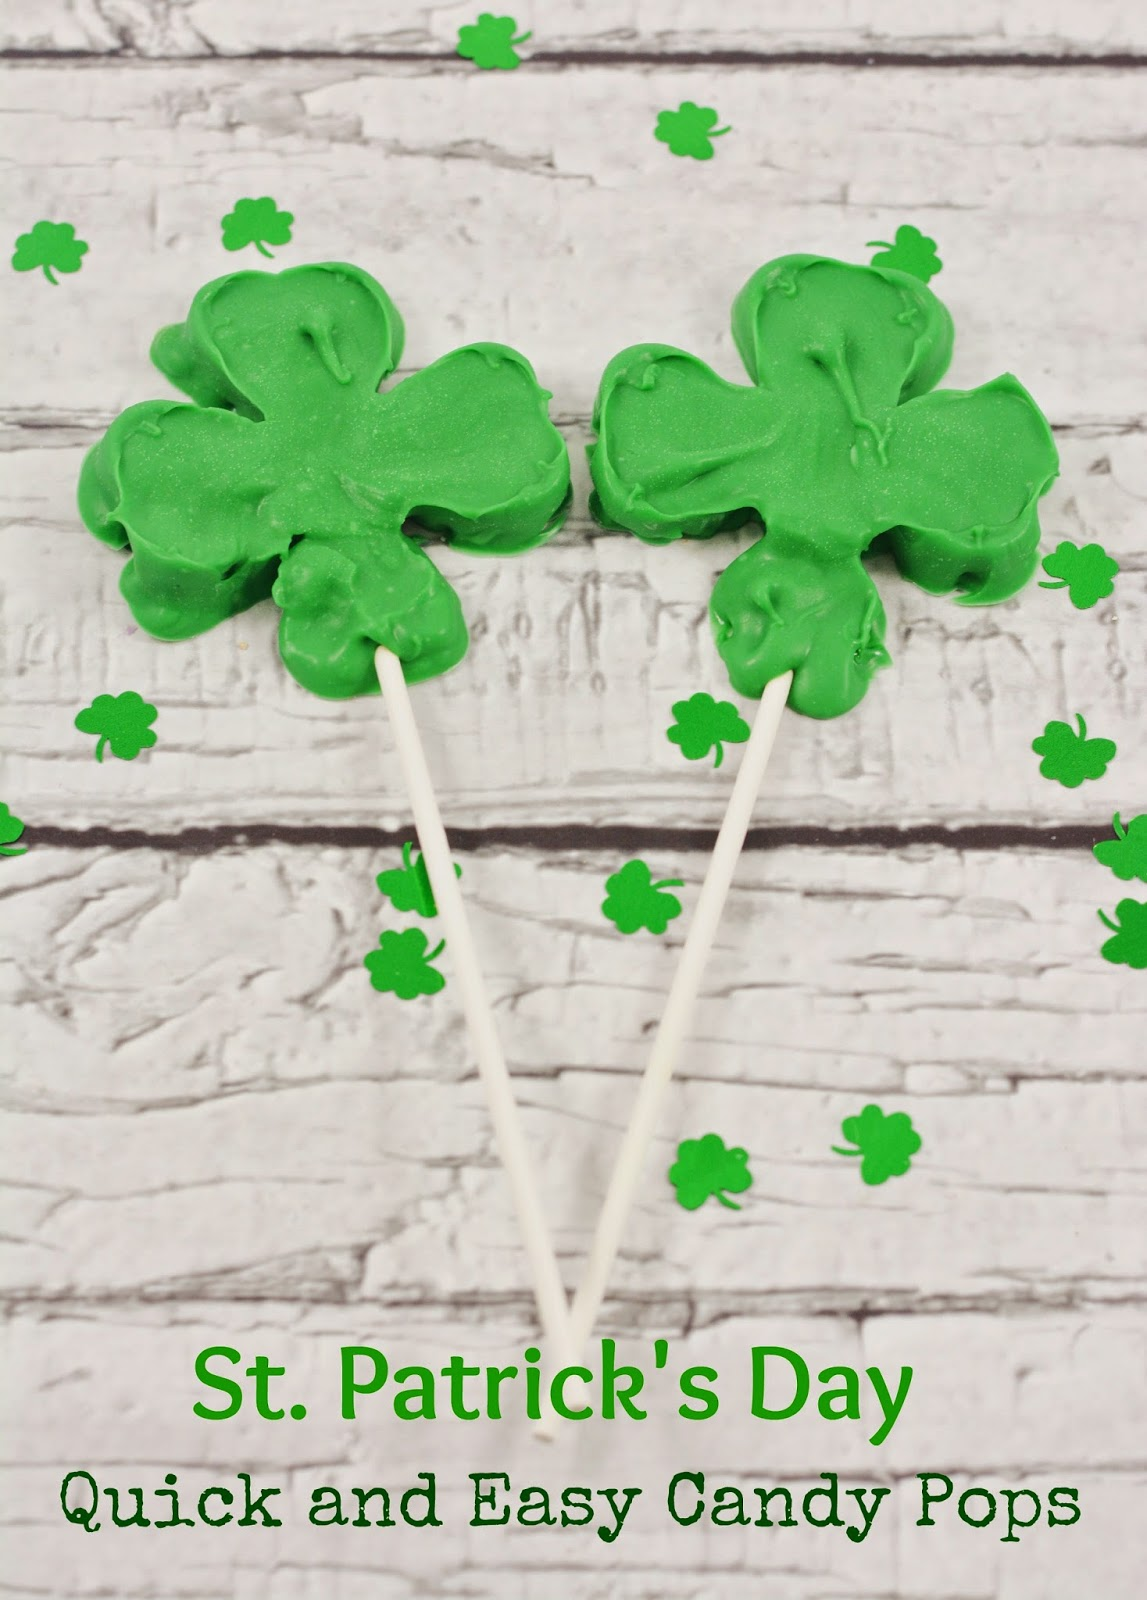 Easy St. Patrick's Day Candy Pops that you can make in minutes! #DIY #recipe